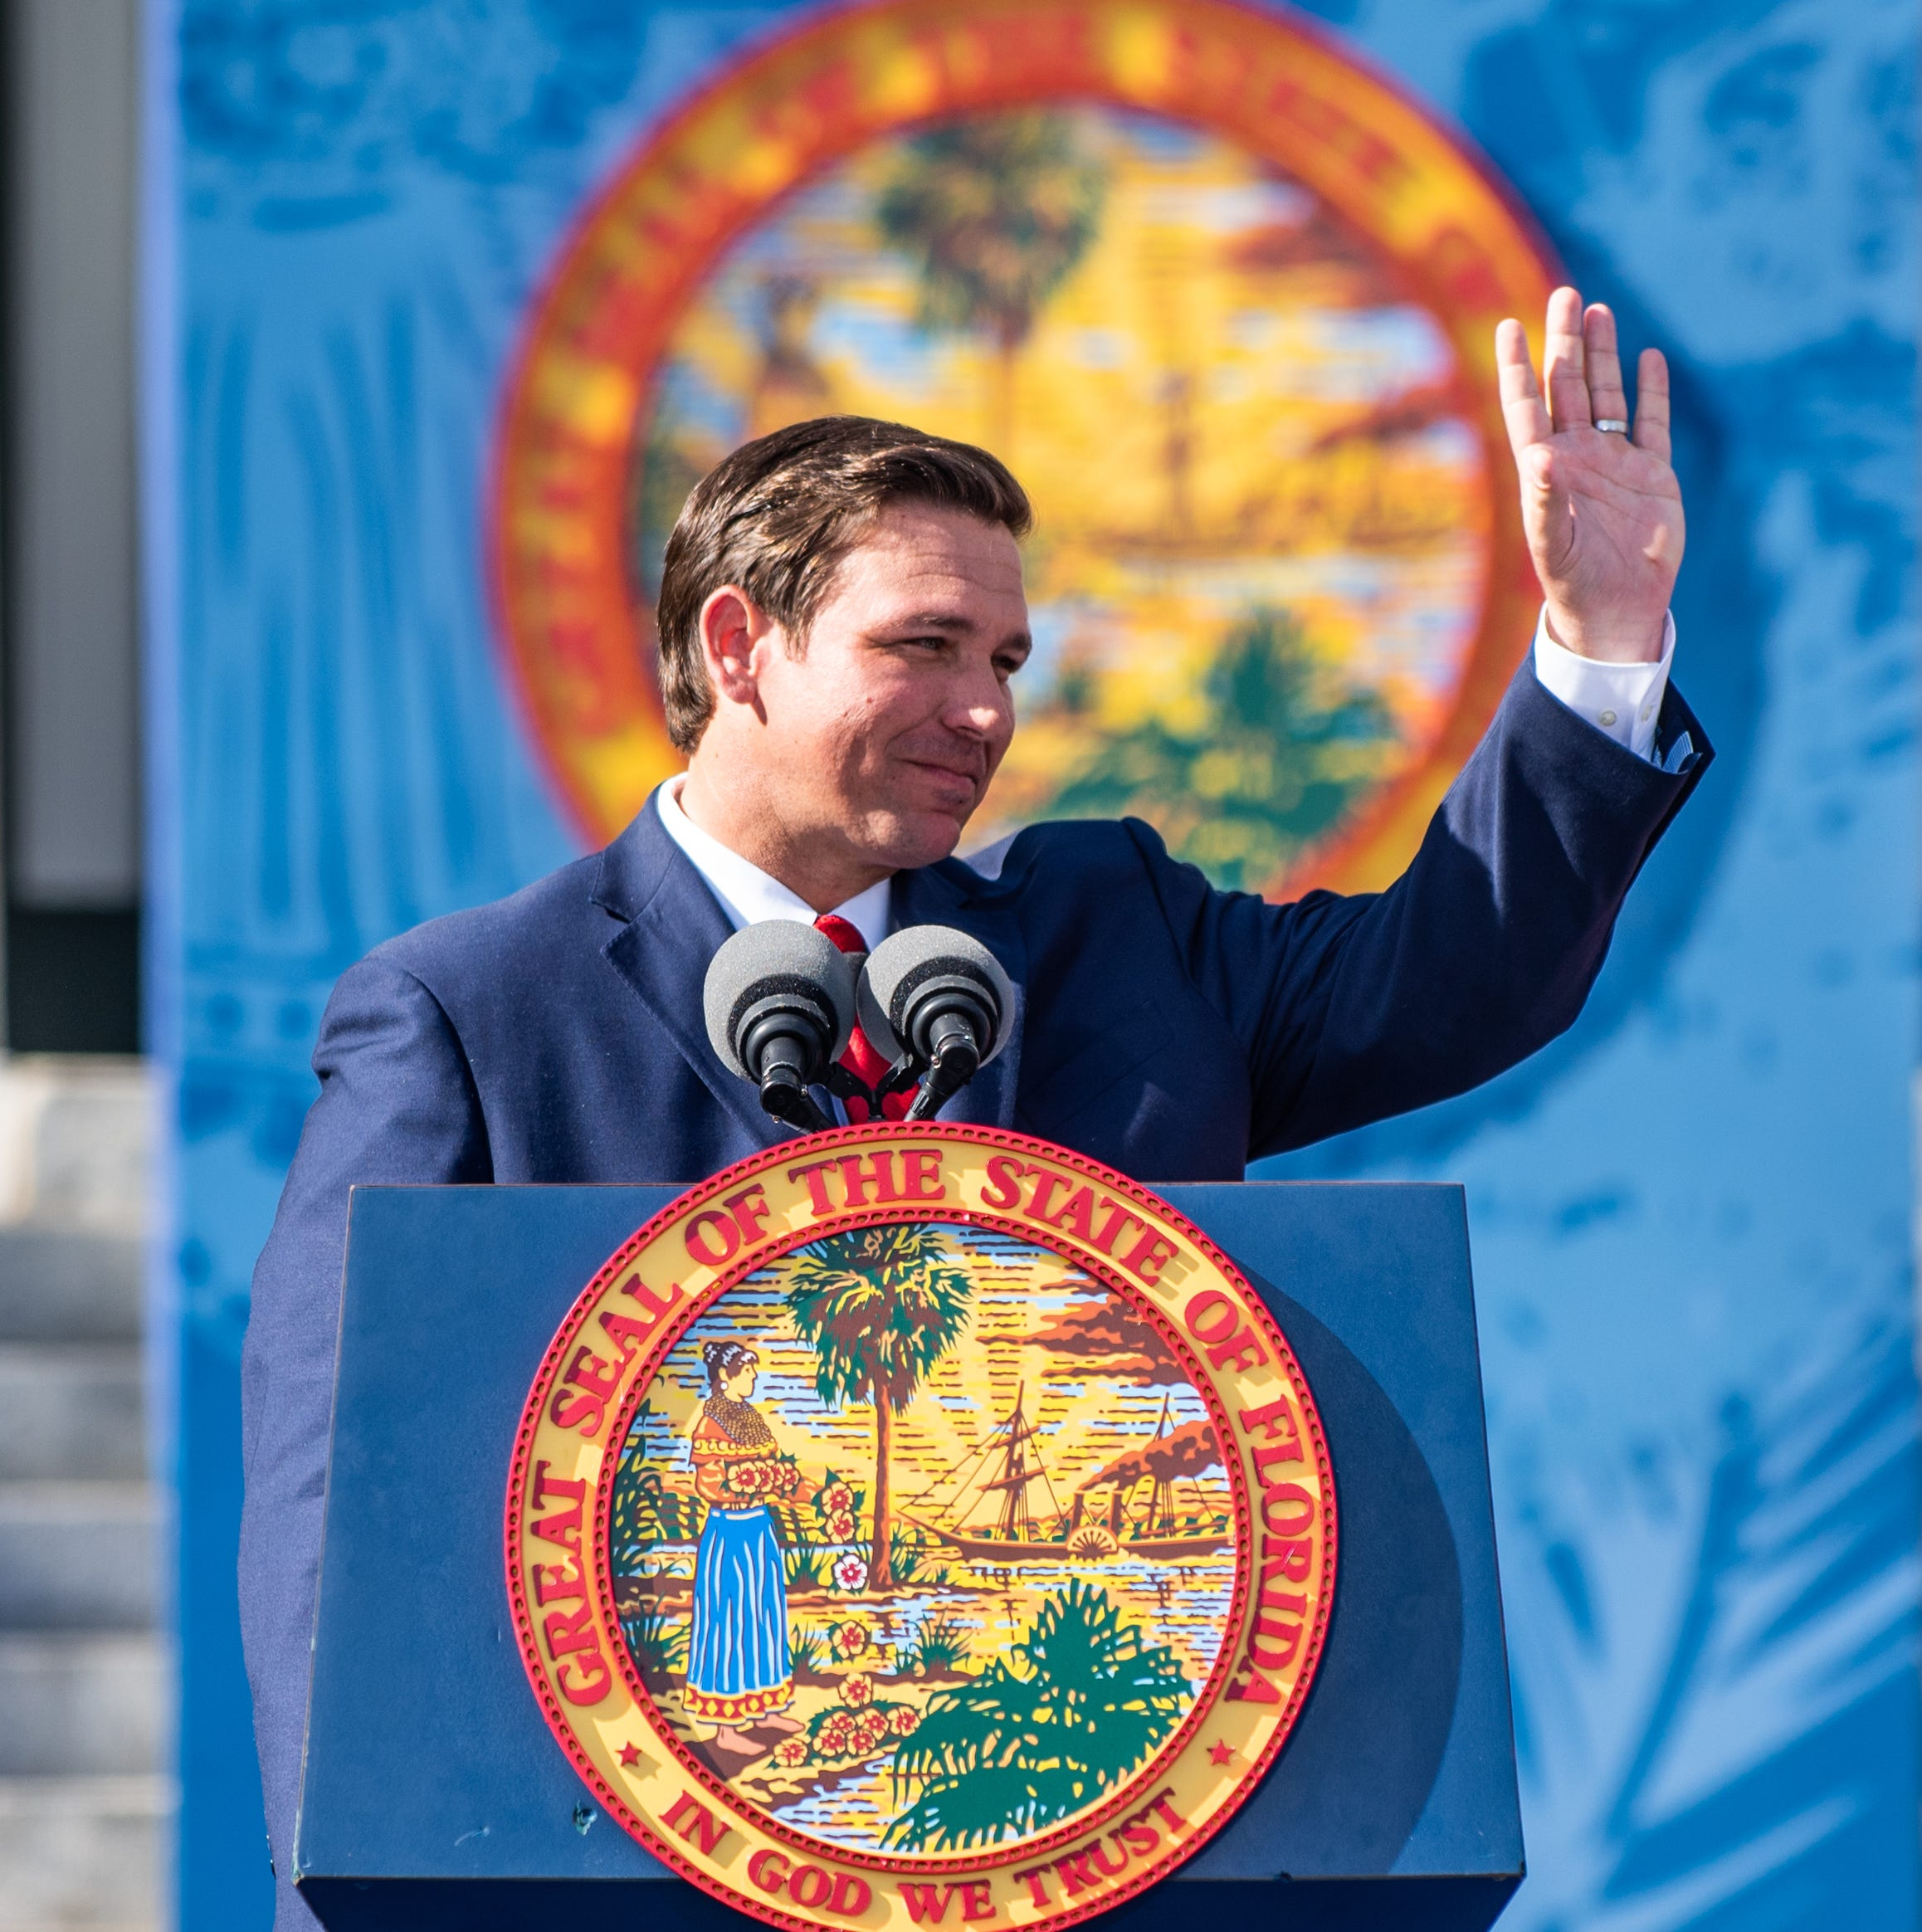 Ron DeSantis officially takes office as Florida's governor